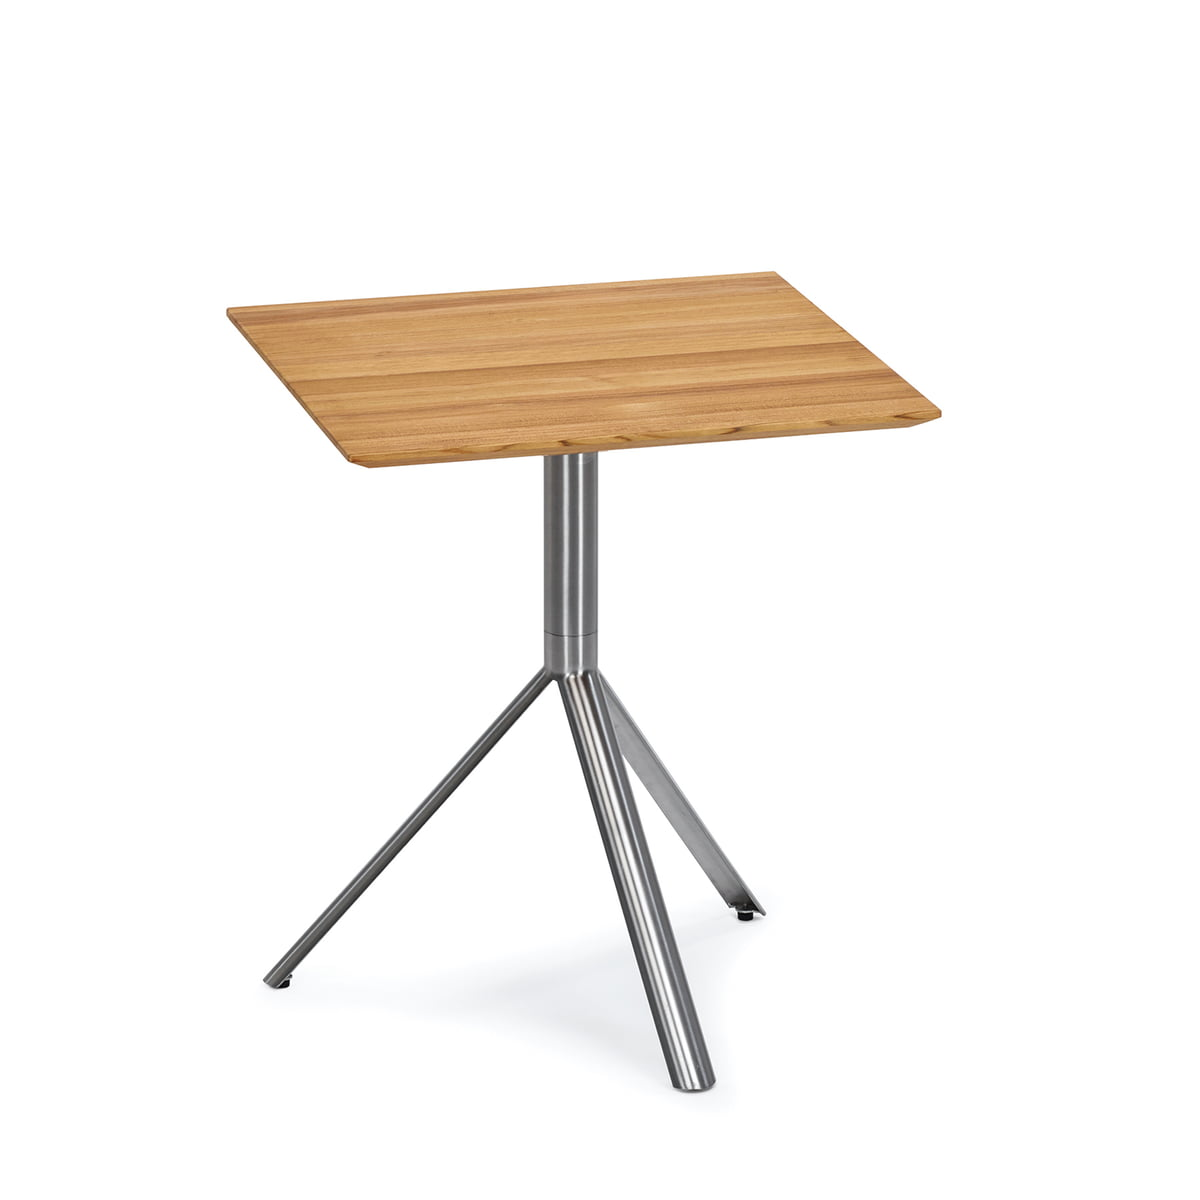 Round Trio Bistro Table 60 X 60cm By Weishäupl Out Of Stainless Steel And  Teak Wood